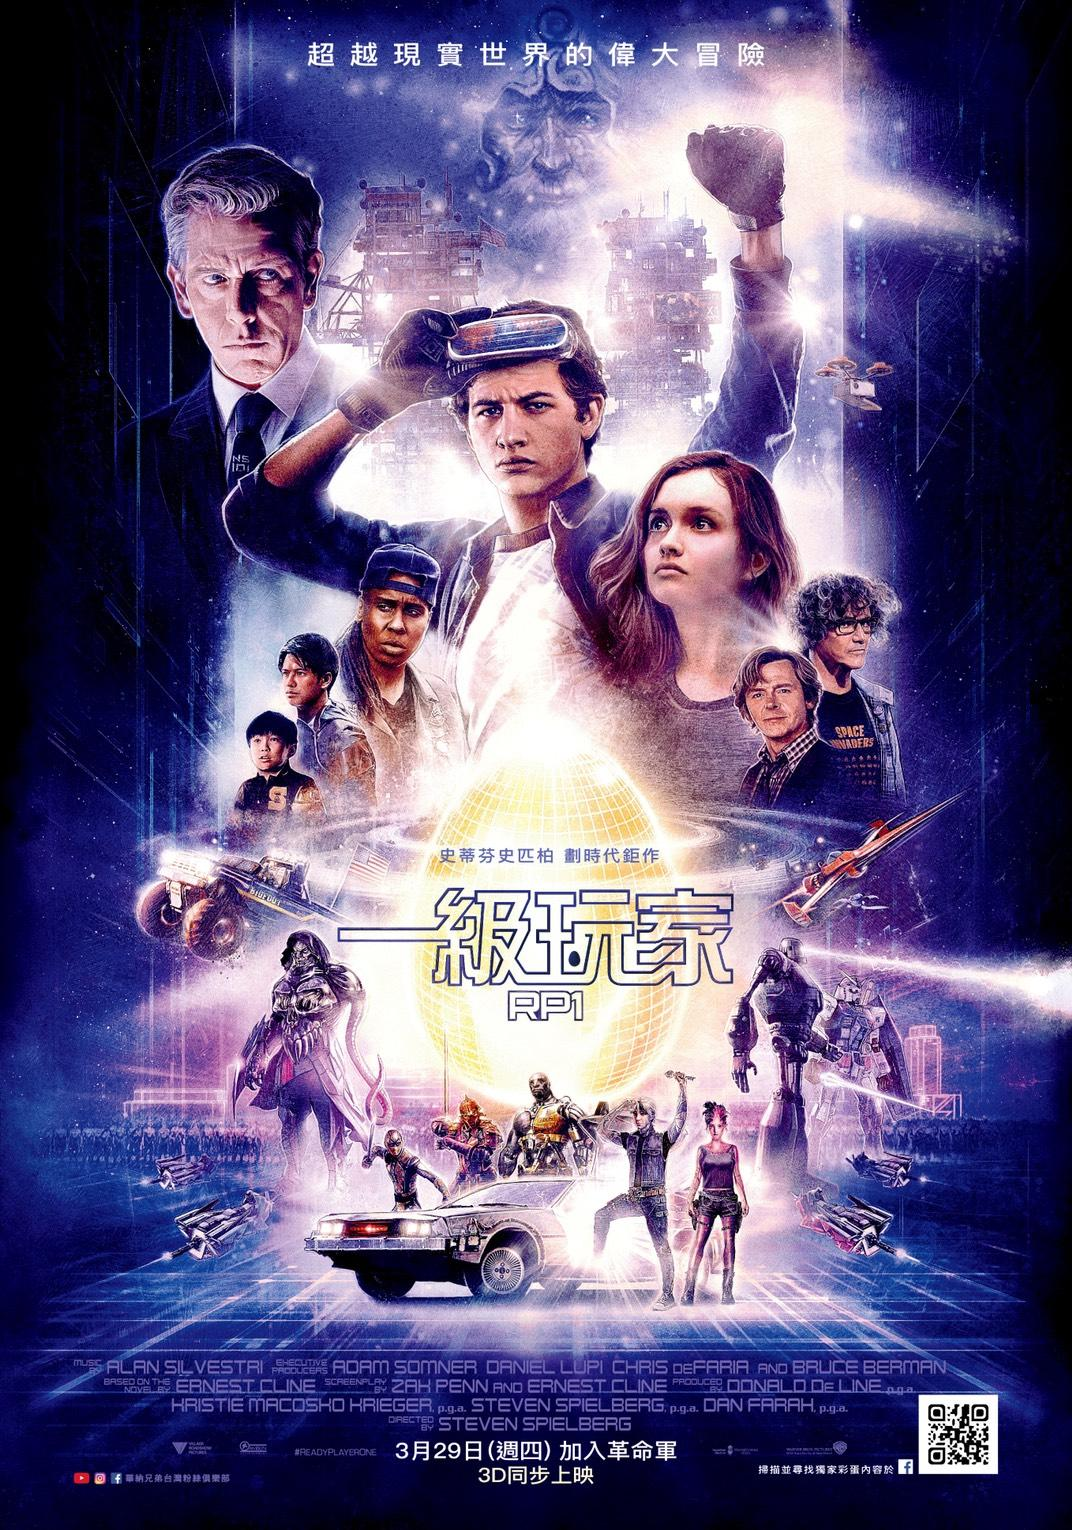 Ready player one 一級玩家